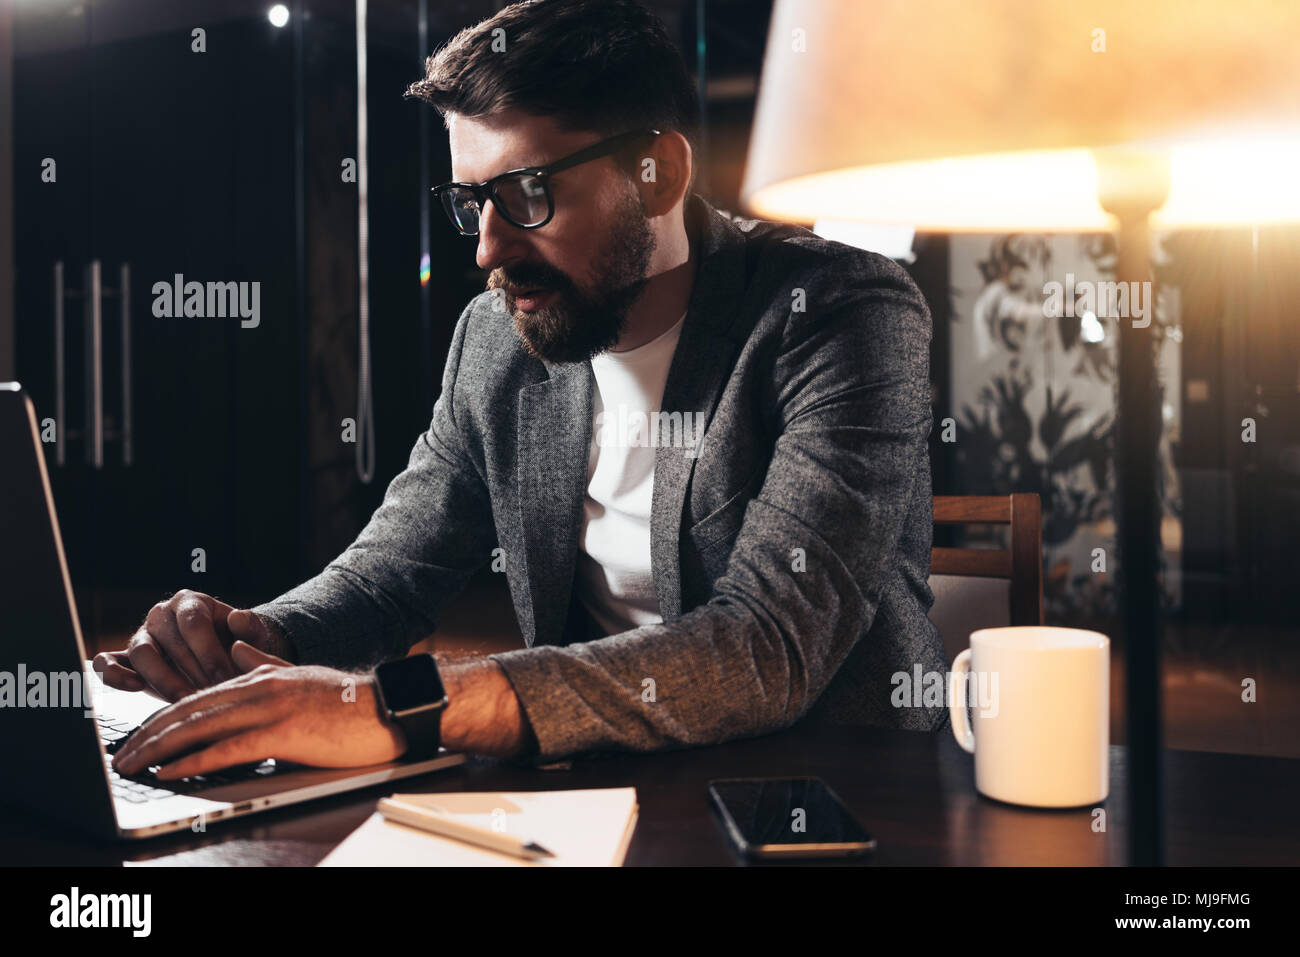 Bearded young businessman working in loft space at night. Coworker sits by the wooden table with lamp and office tools. Project manager using contempo - Stock Image